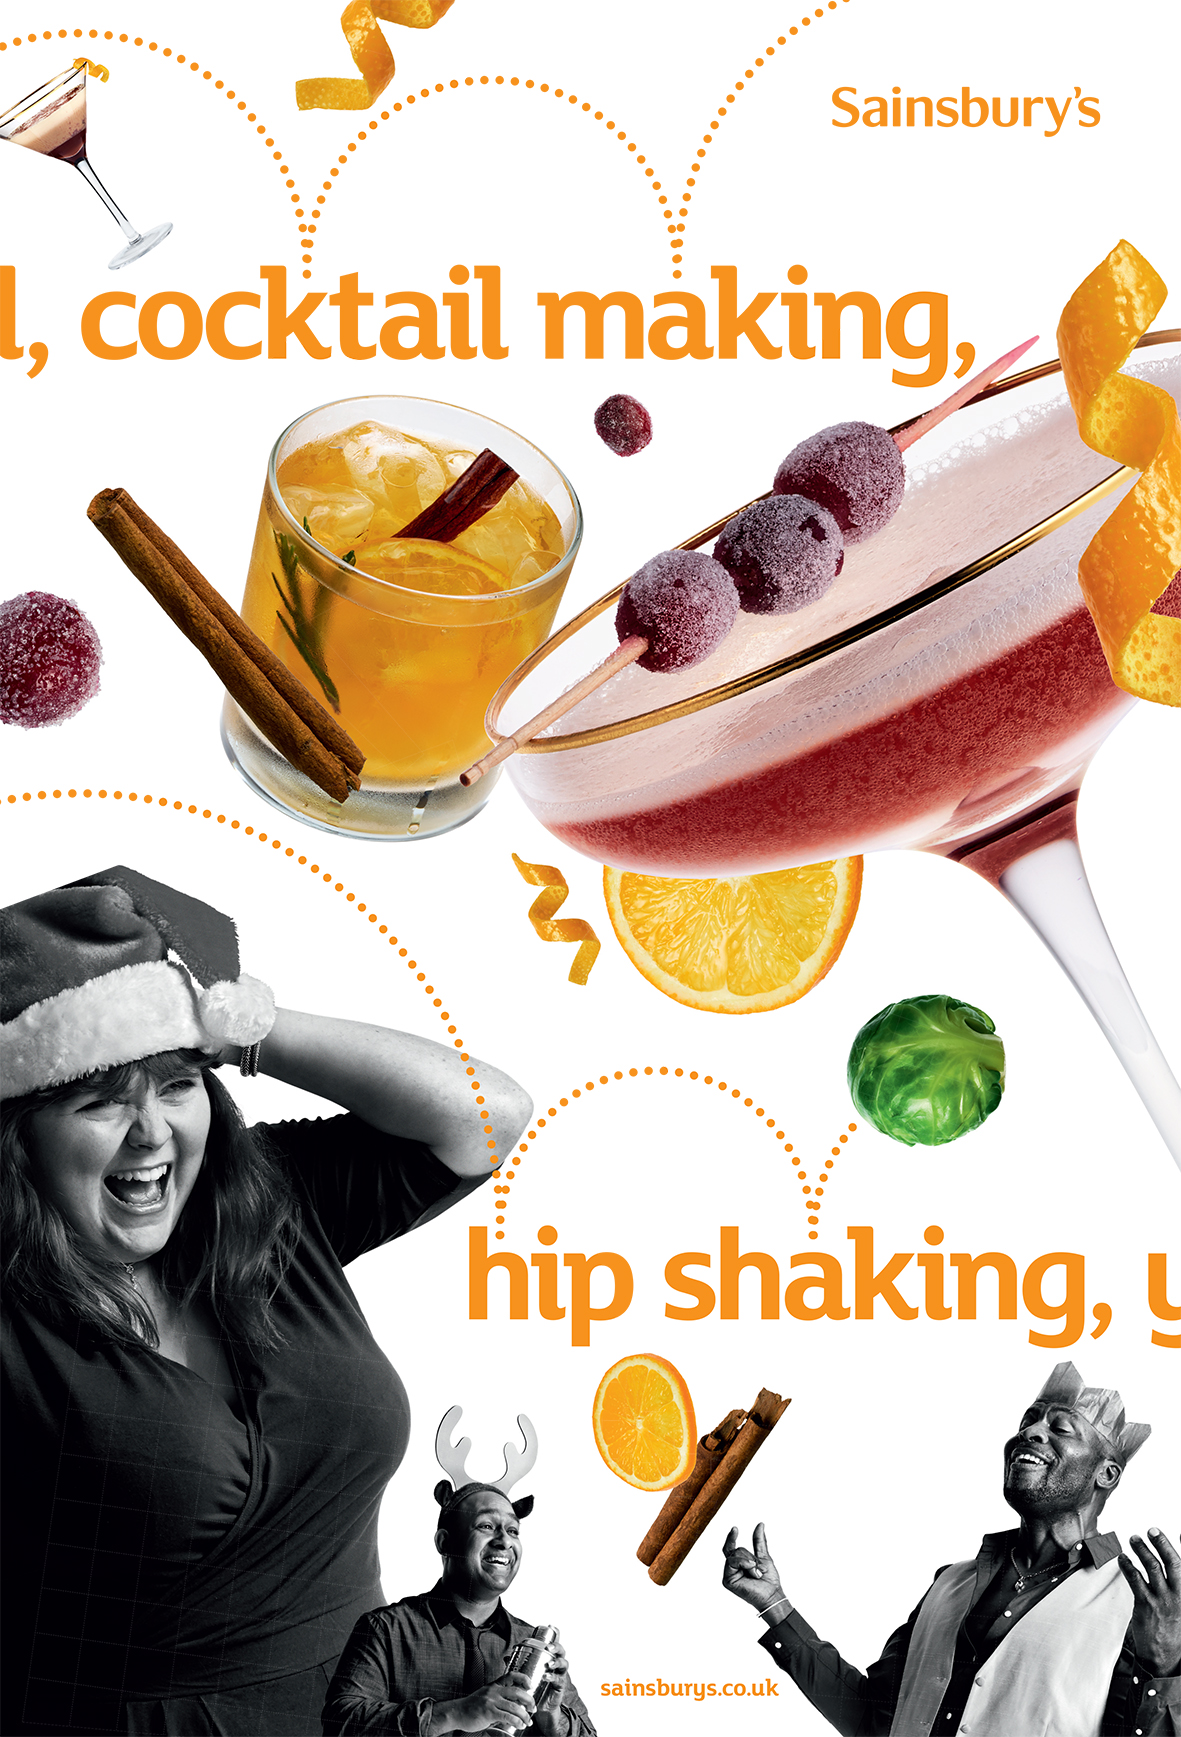 sainsburys xmas 6sheet drinks copy.jpg